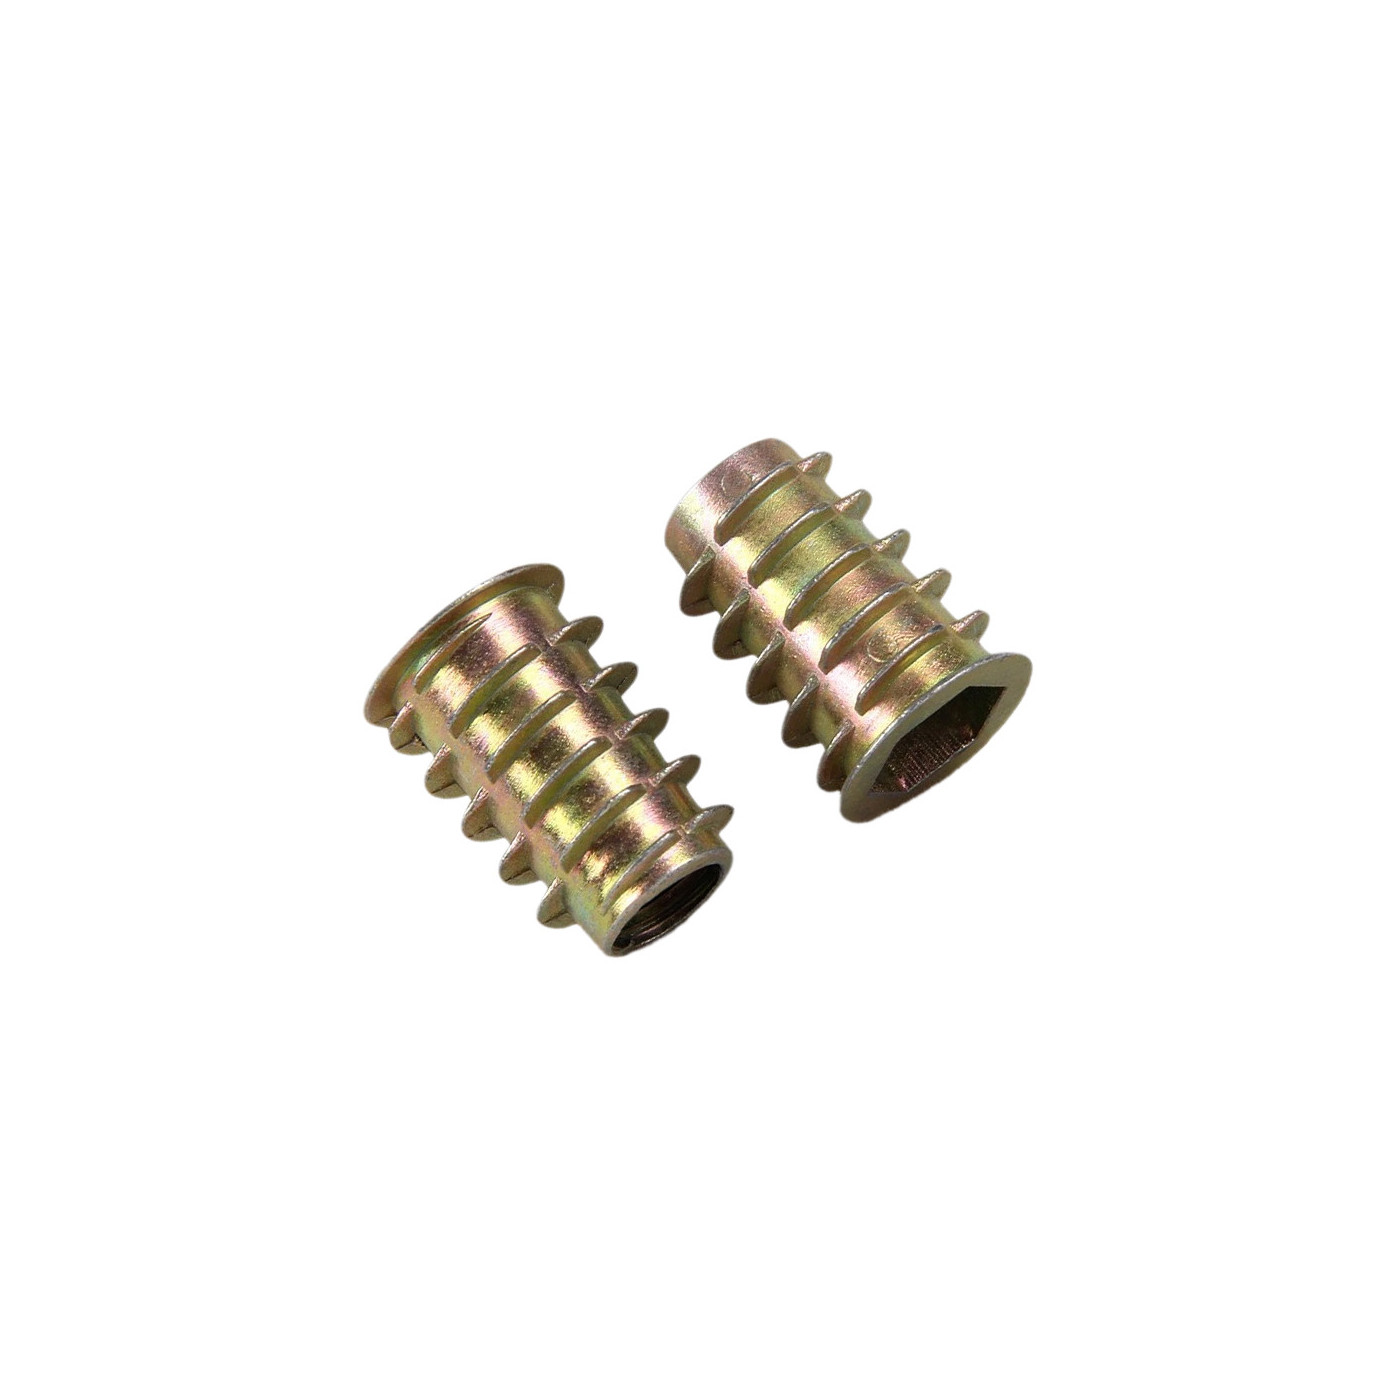 Set of 50 threaded inserts (screw-in nuts, M8x15 mm)